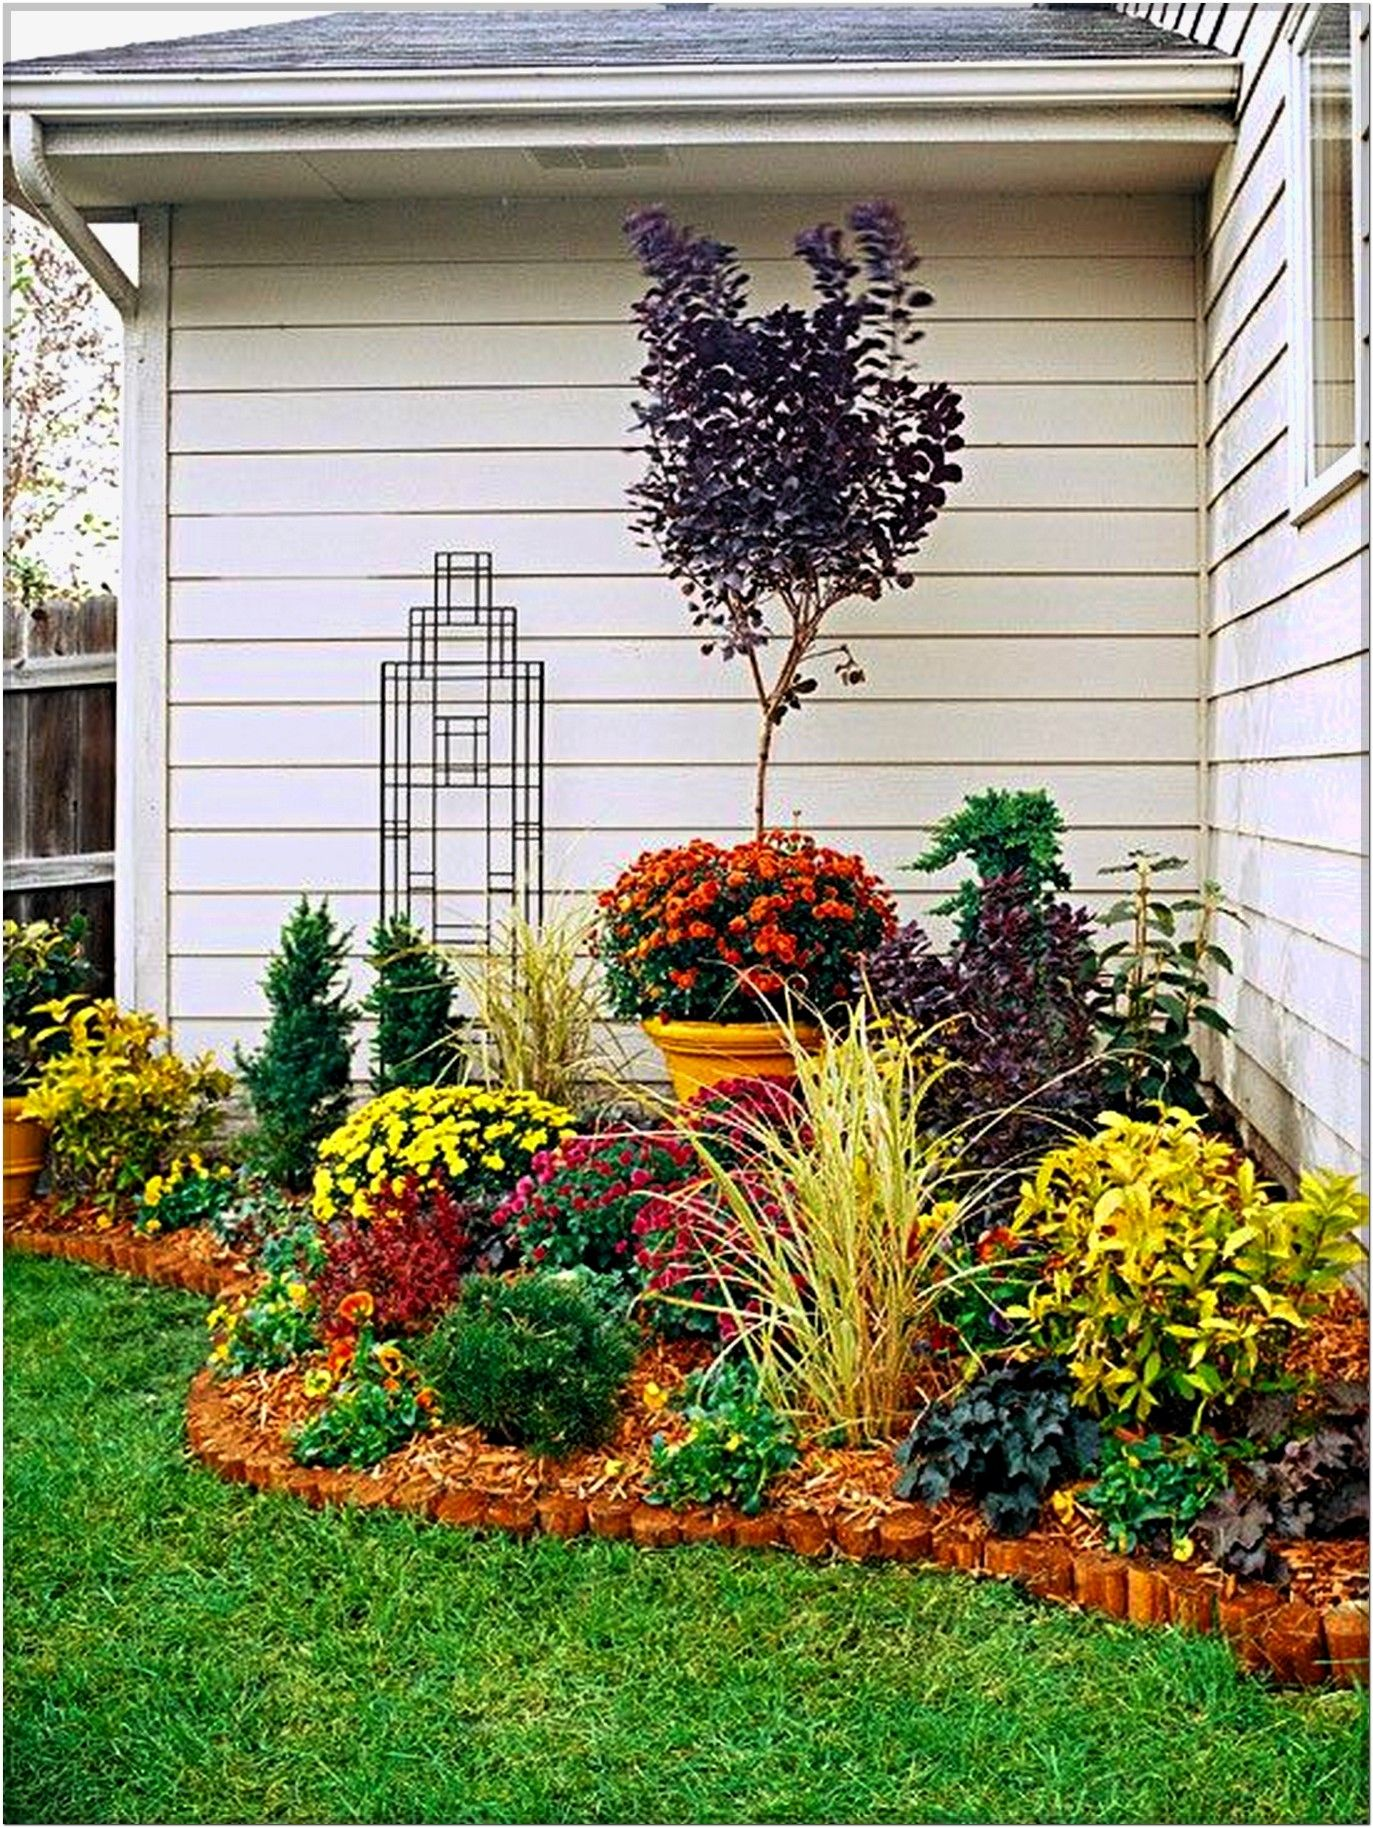 Flower Garden Design flowers in garden edges Flower Small Corner Garden Design